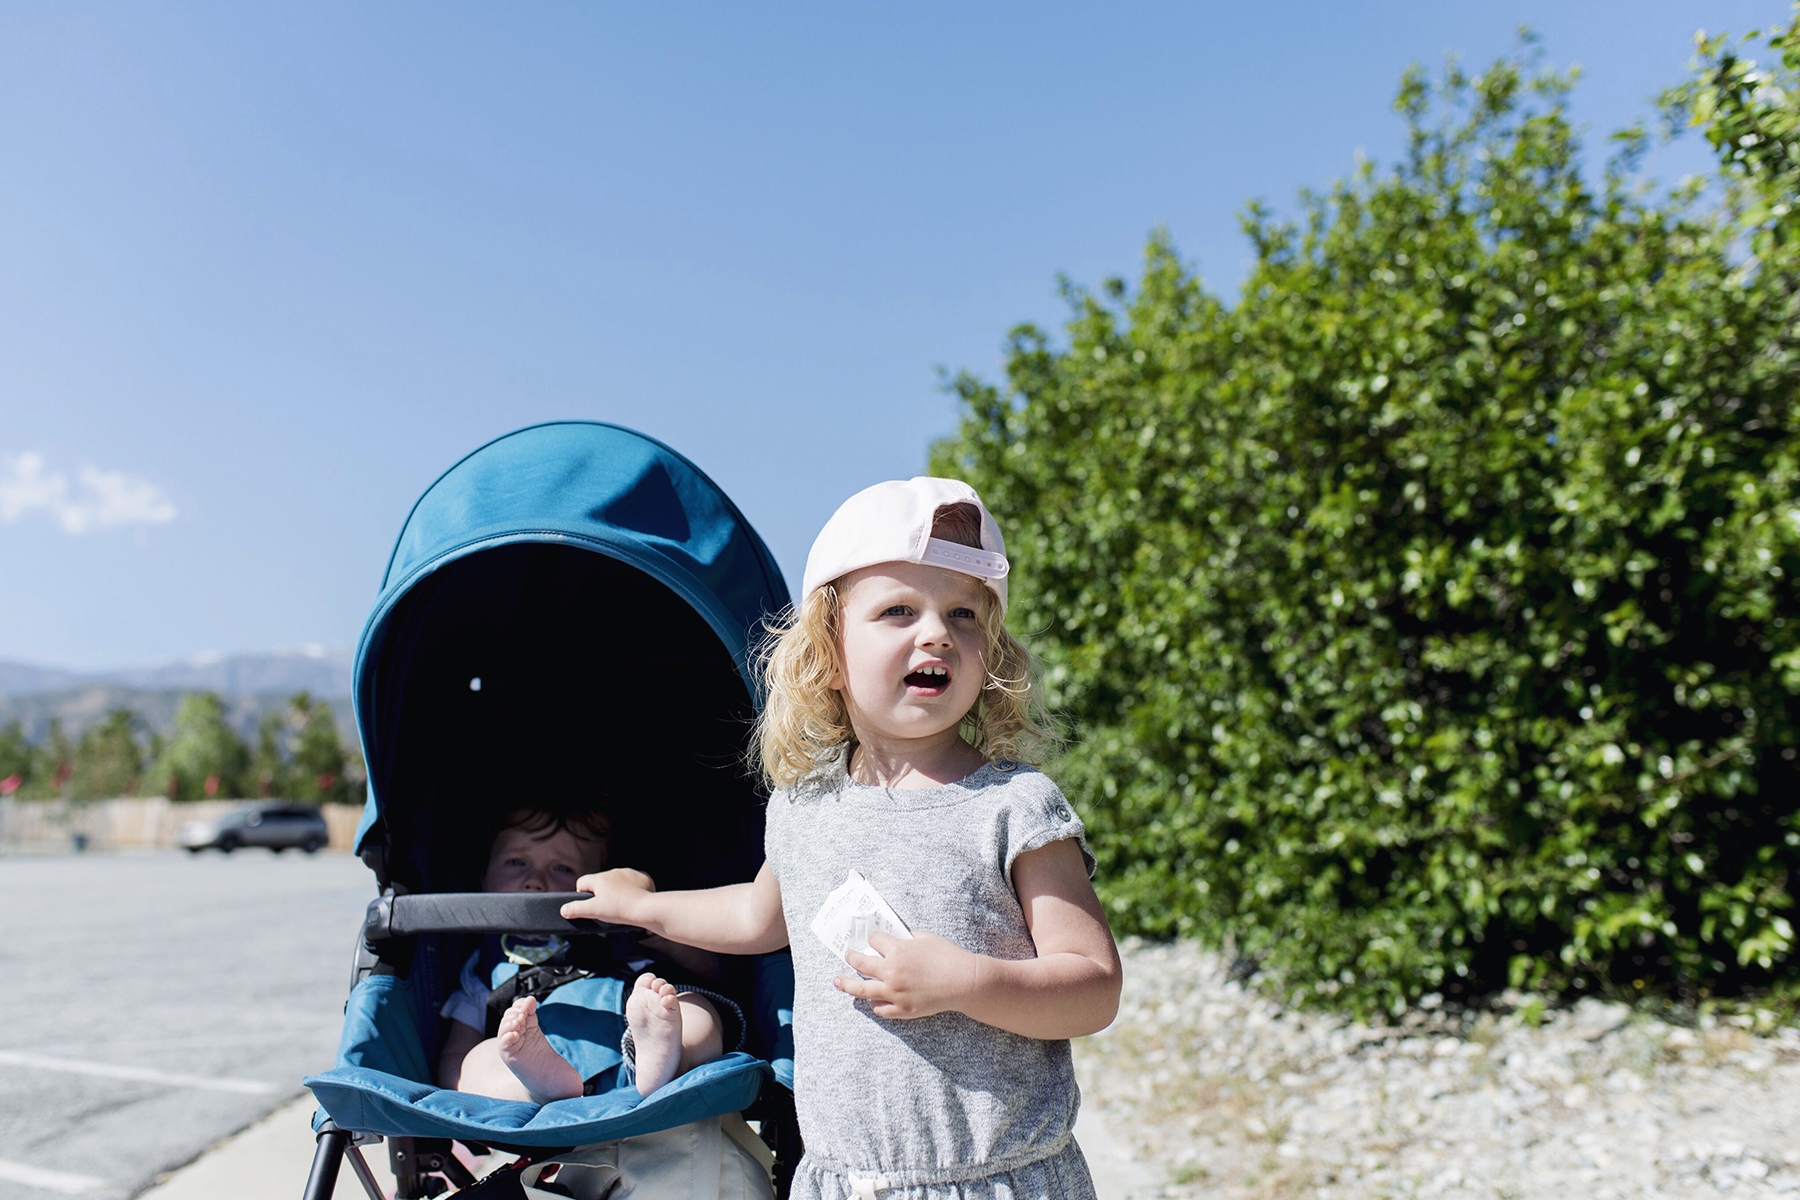 Cabazon Dinosaurs Palm Springs, California family travel with baby & toddler   Happy Grey Lucky